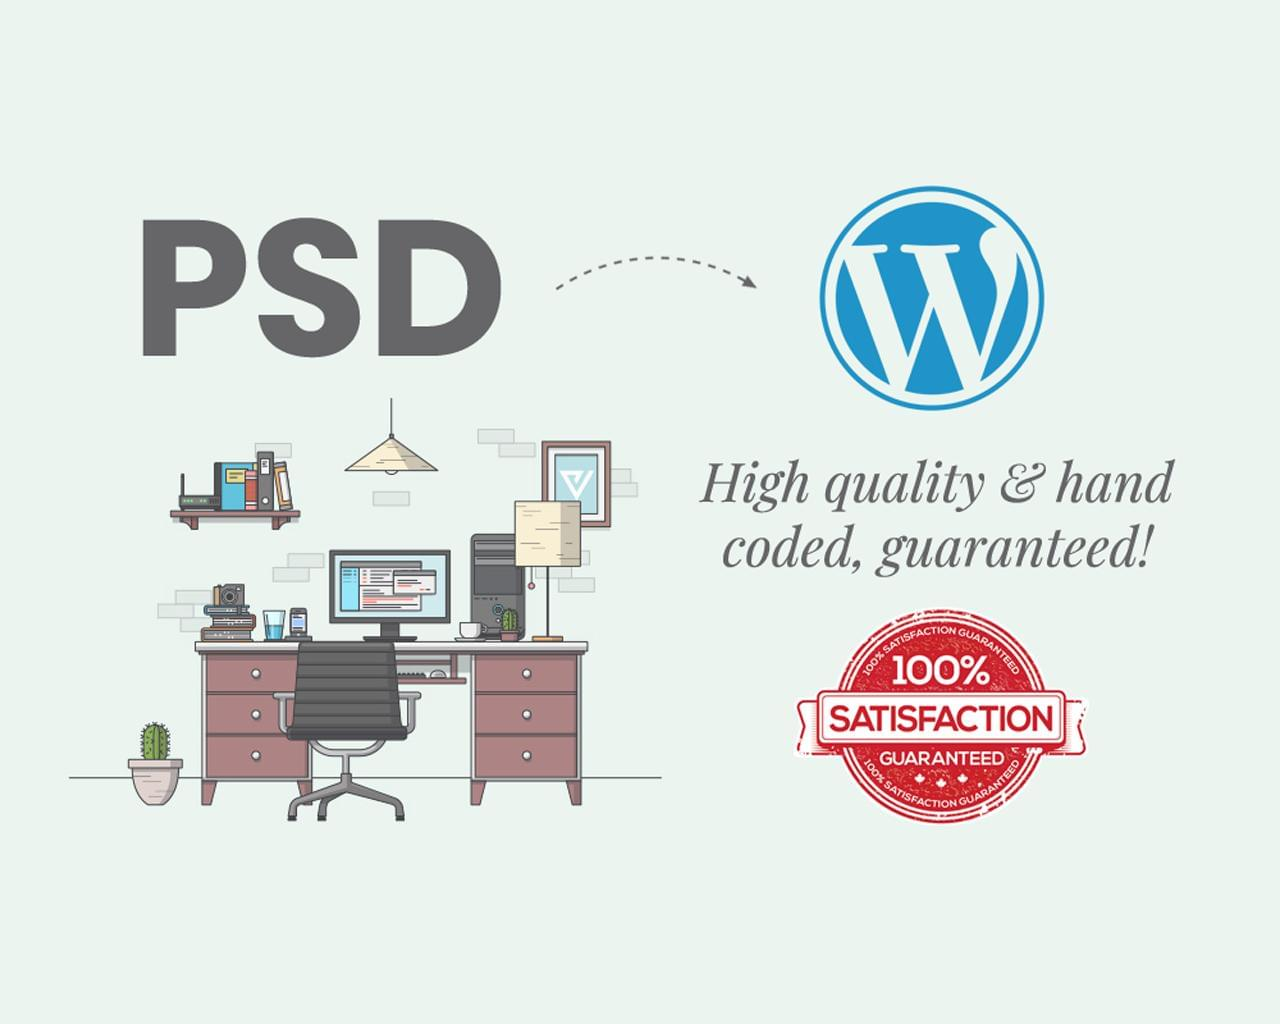 PSD to WordPress Responsive Website Conversion by uipro - 111198